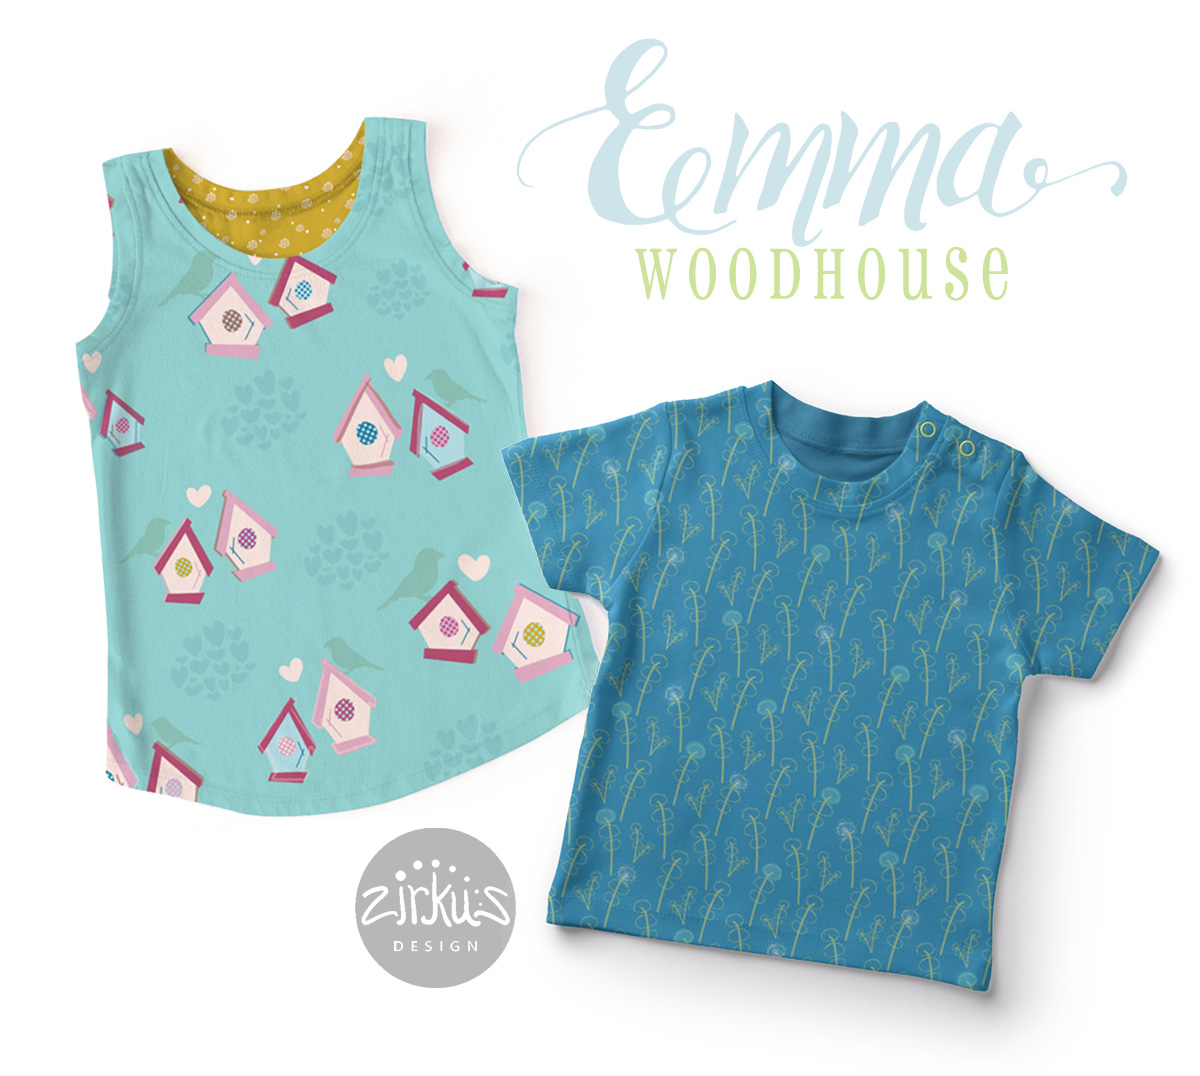 Zirkus Design | Emma Woodhouse Pattern Collection Children's Clothing T Shirt Mockups